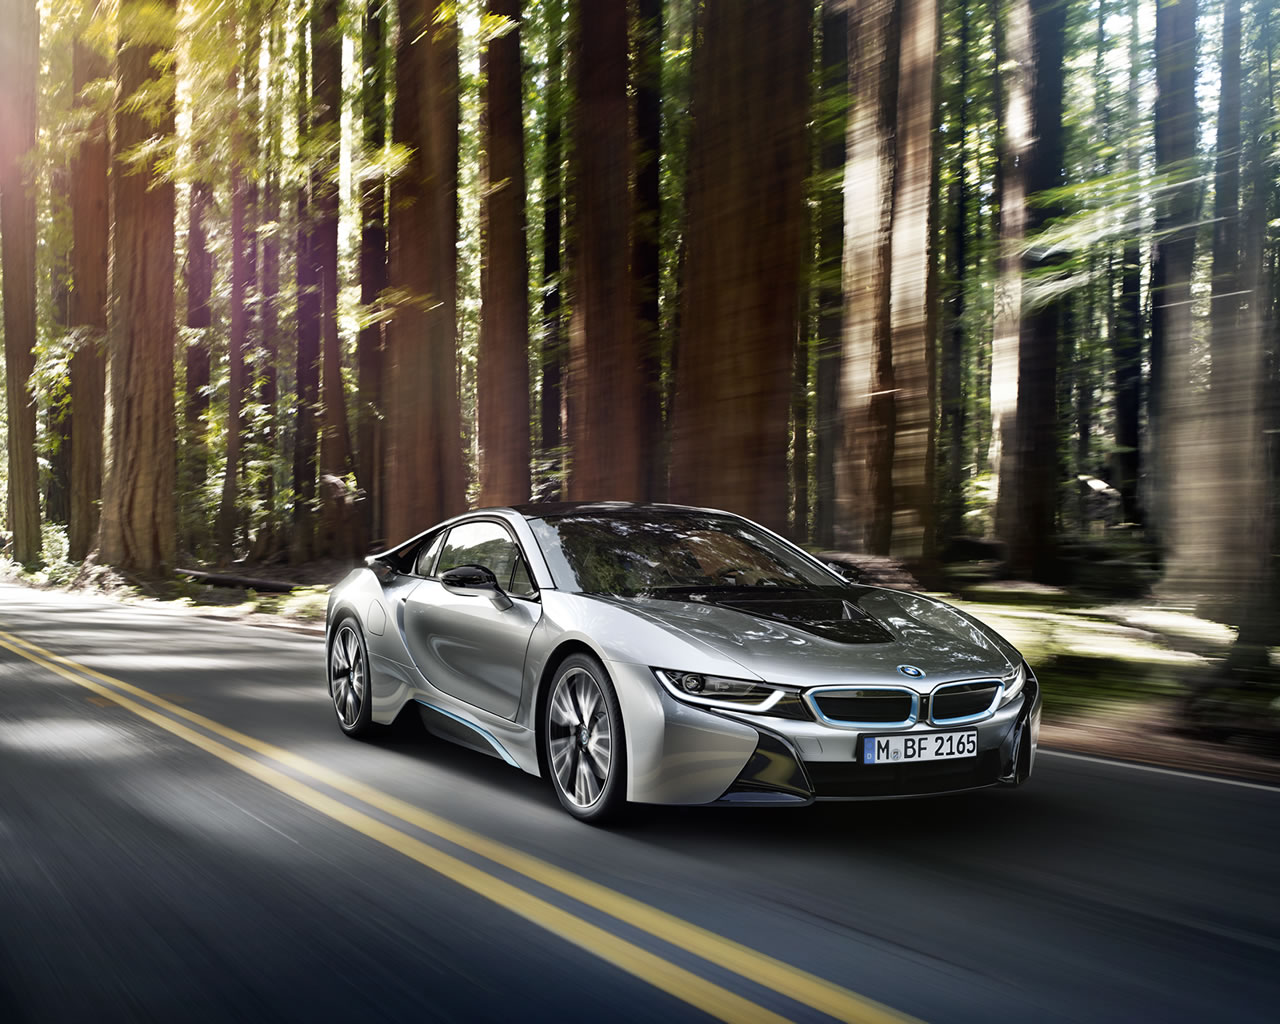 2015 Bmw I8 Wallpaper 1280 X 1024 Woods Driving Countryside